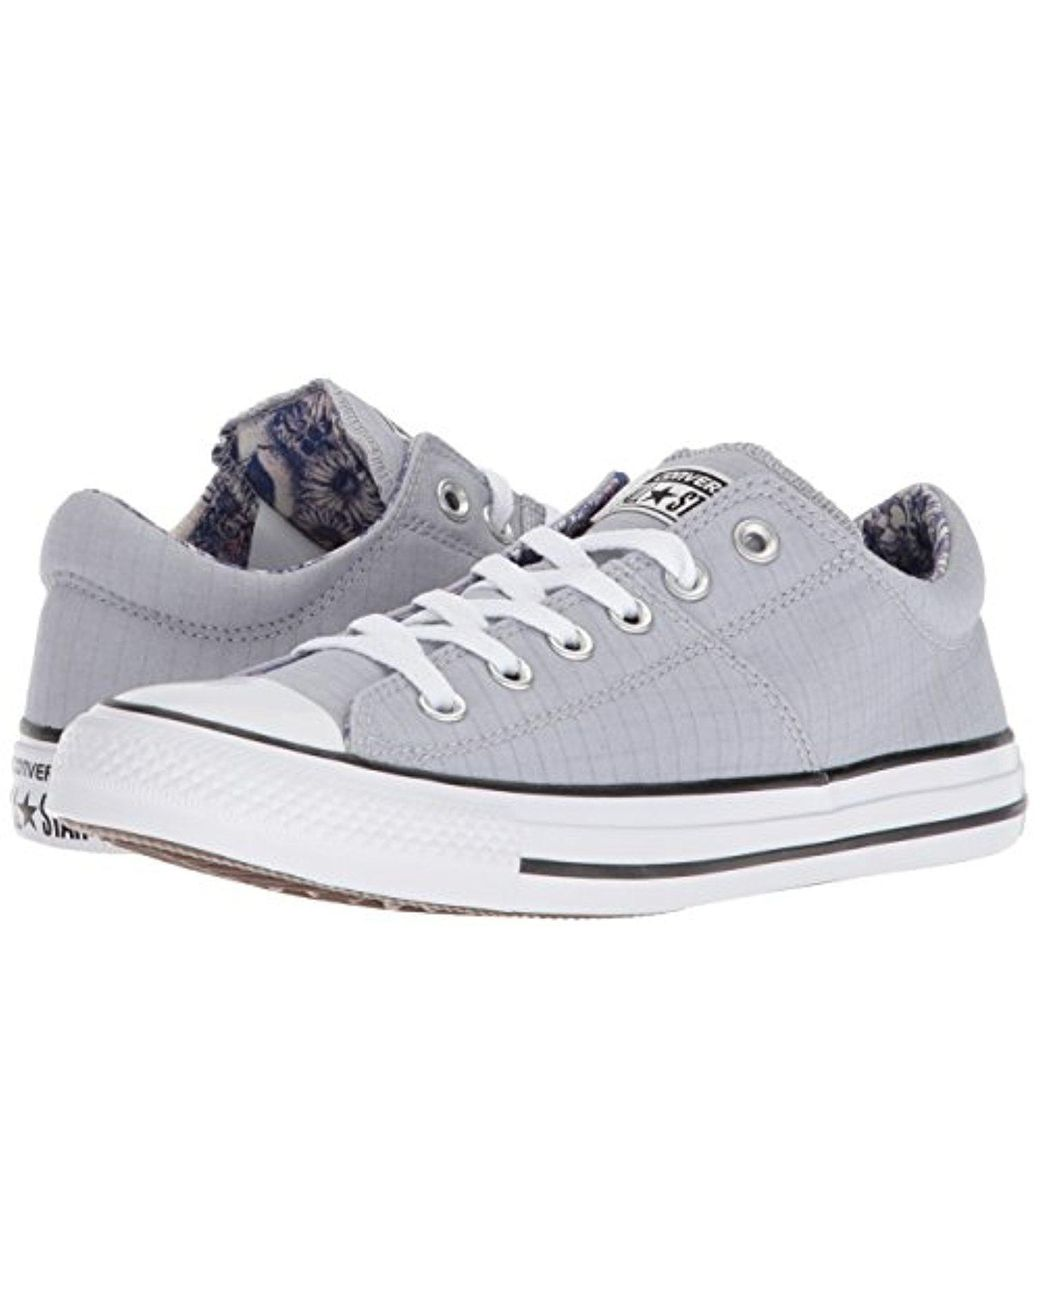 489af684bd59e Women's Gray S Madison Utility Chambray Low Top